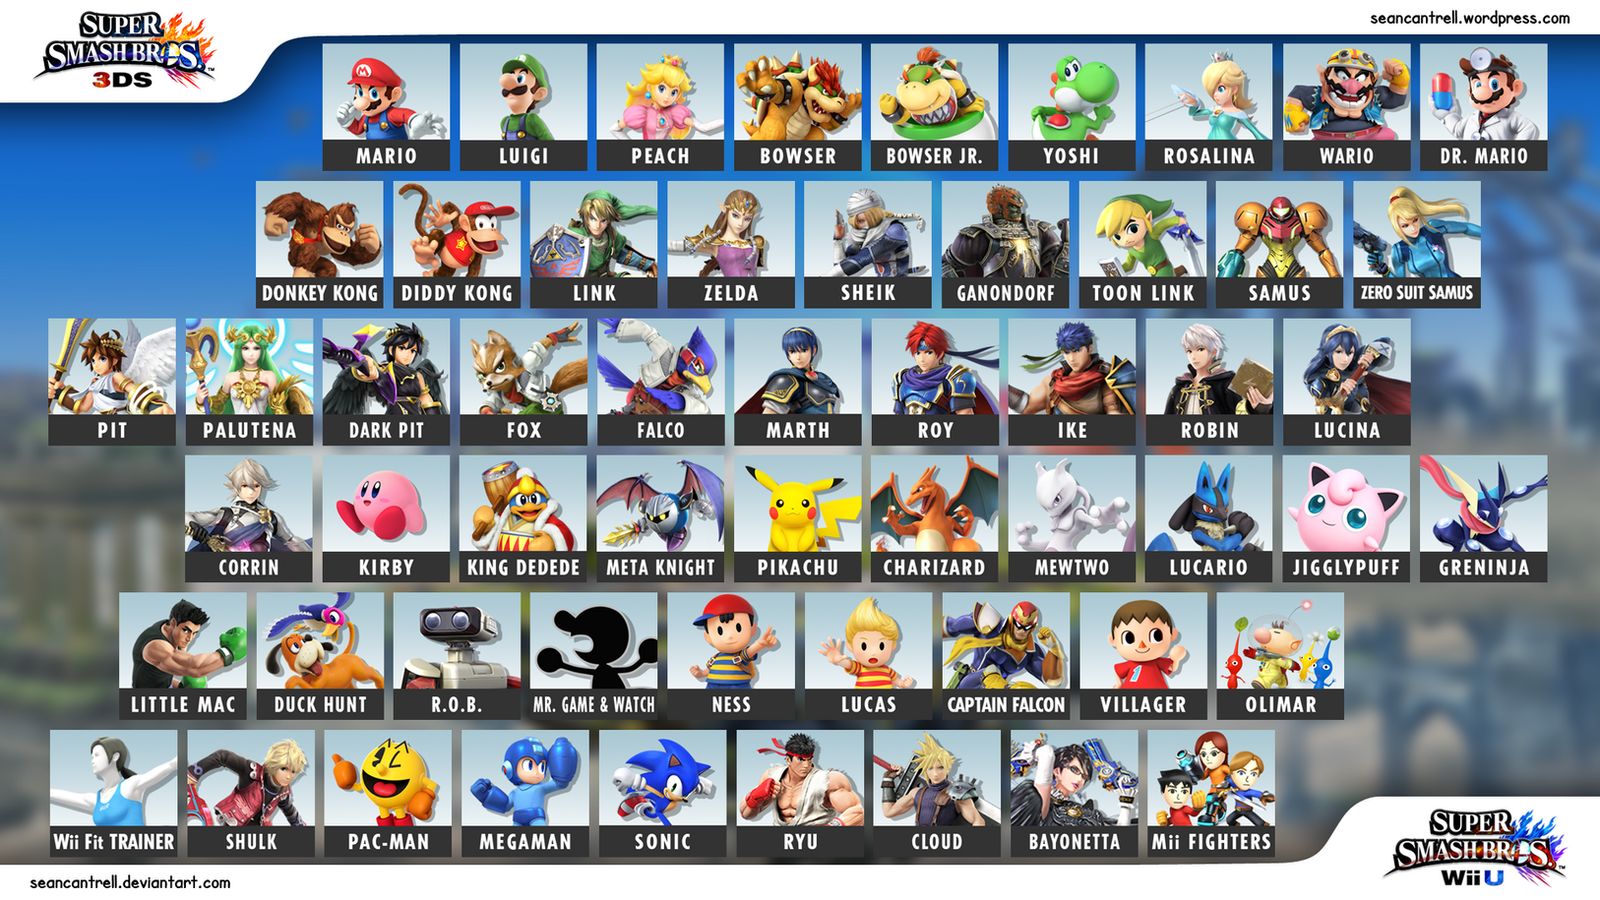 super smash bros wii u 3ds character selection by